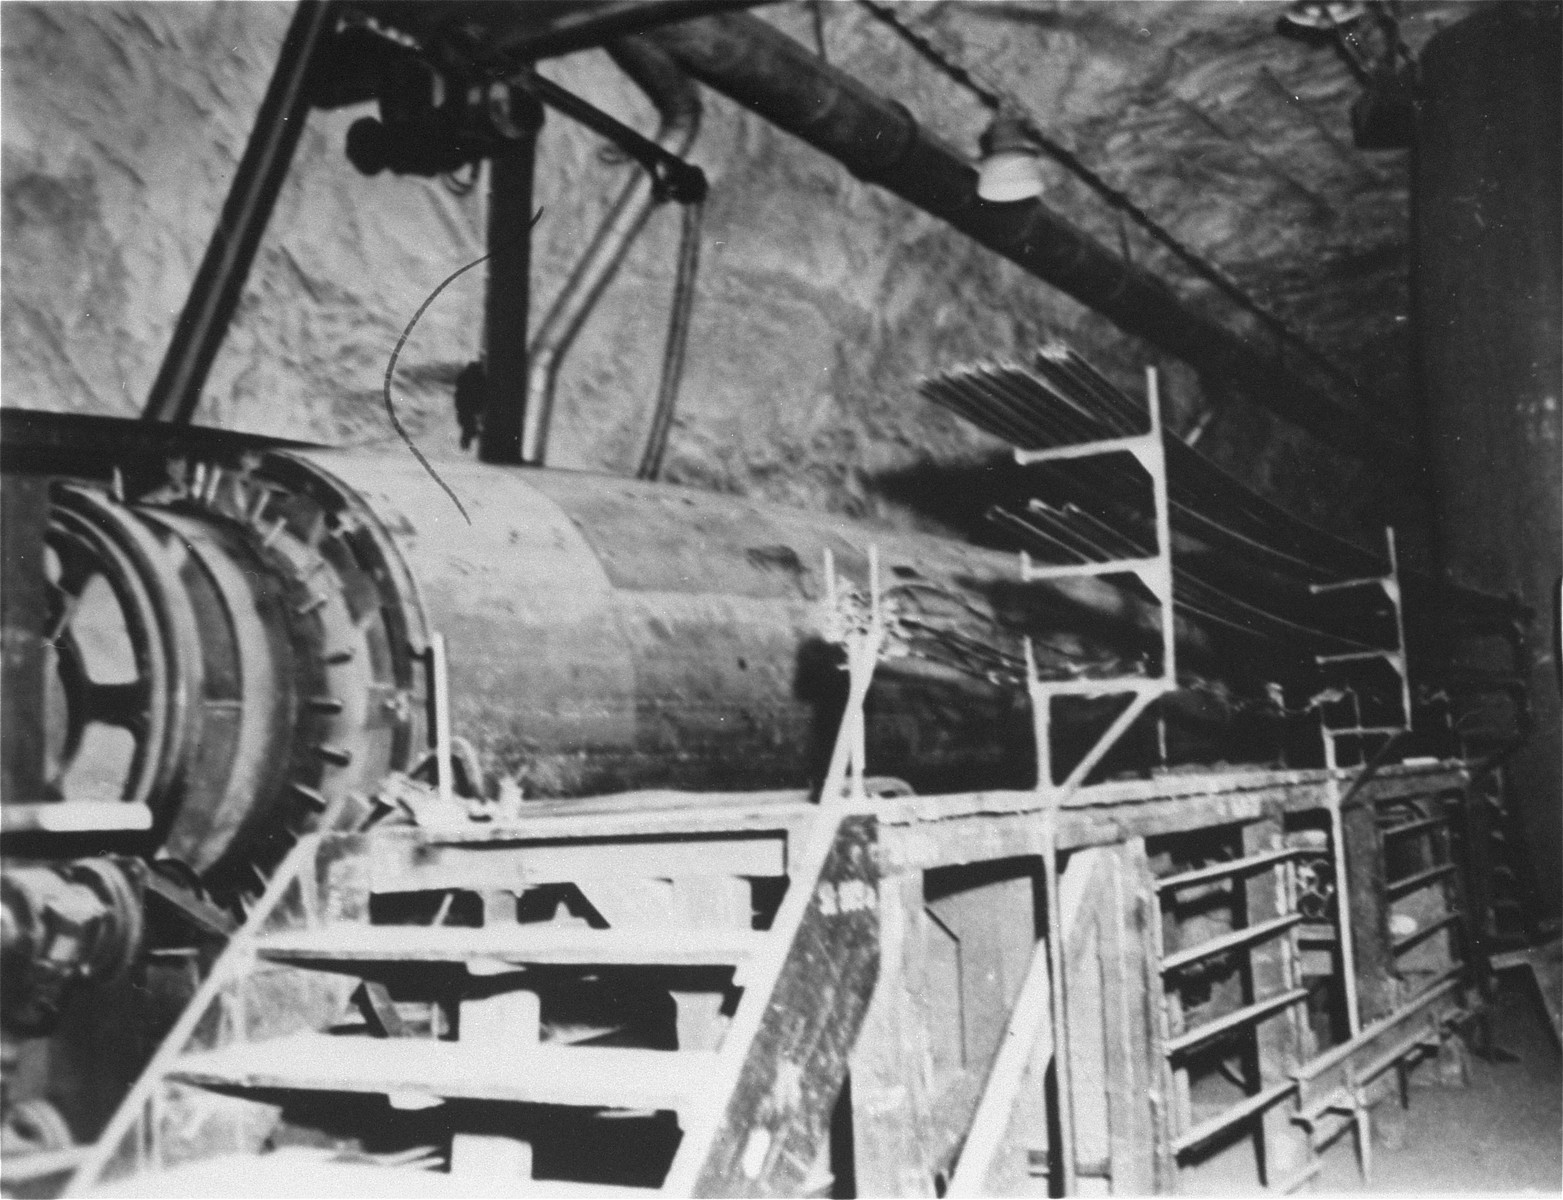 A large jig in the underground rocket plant, which was used to weld stringers to the skin.